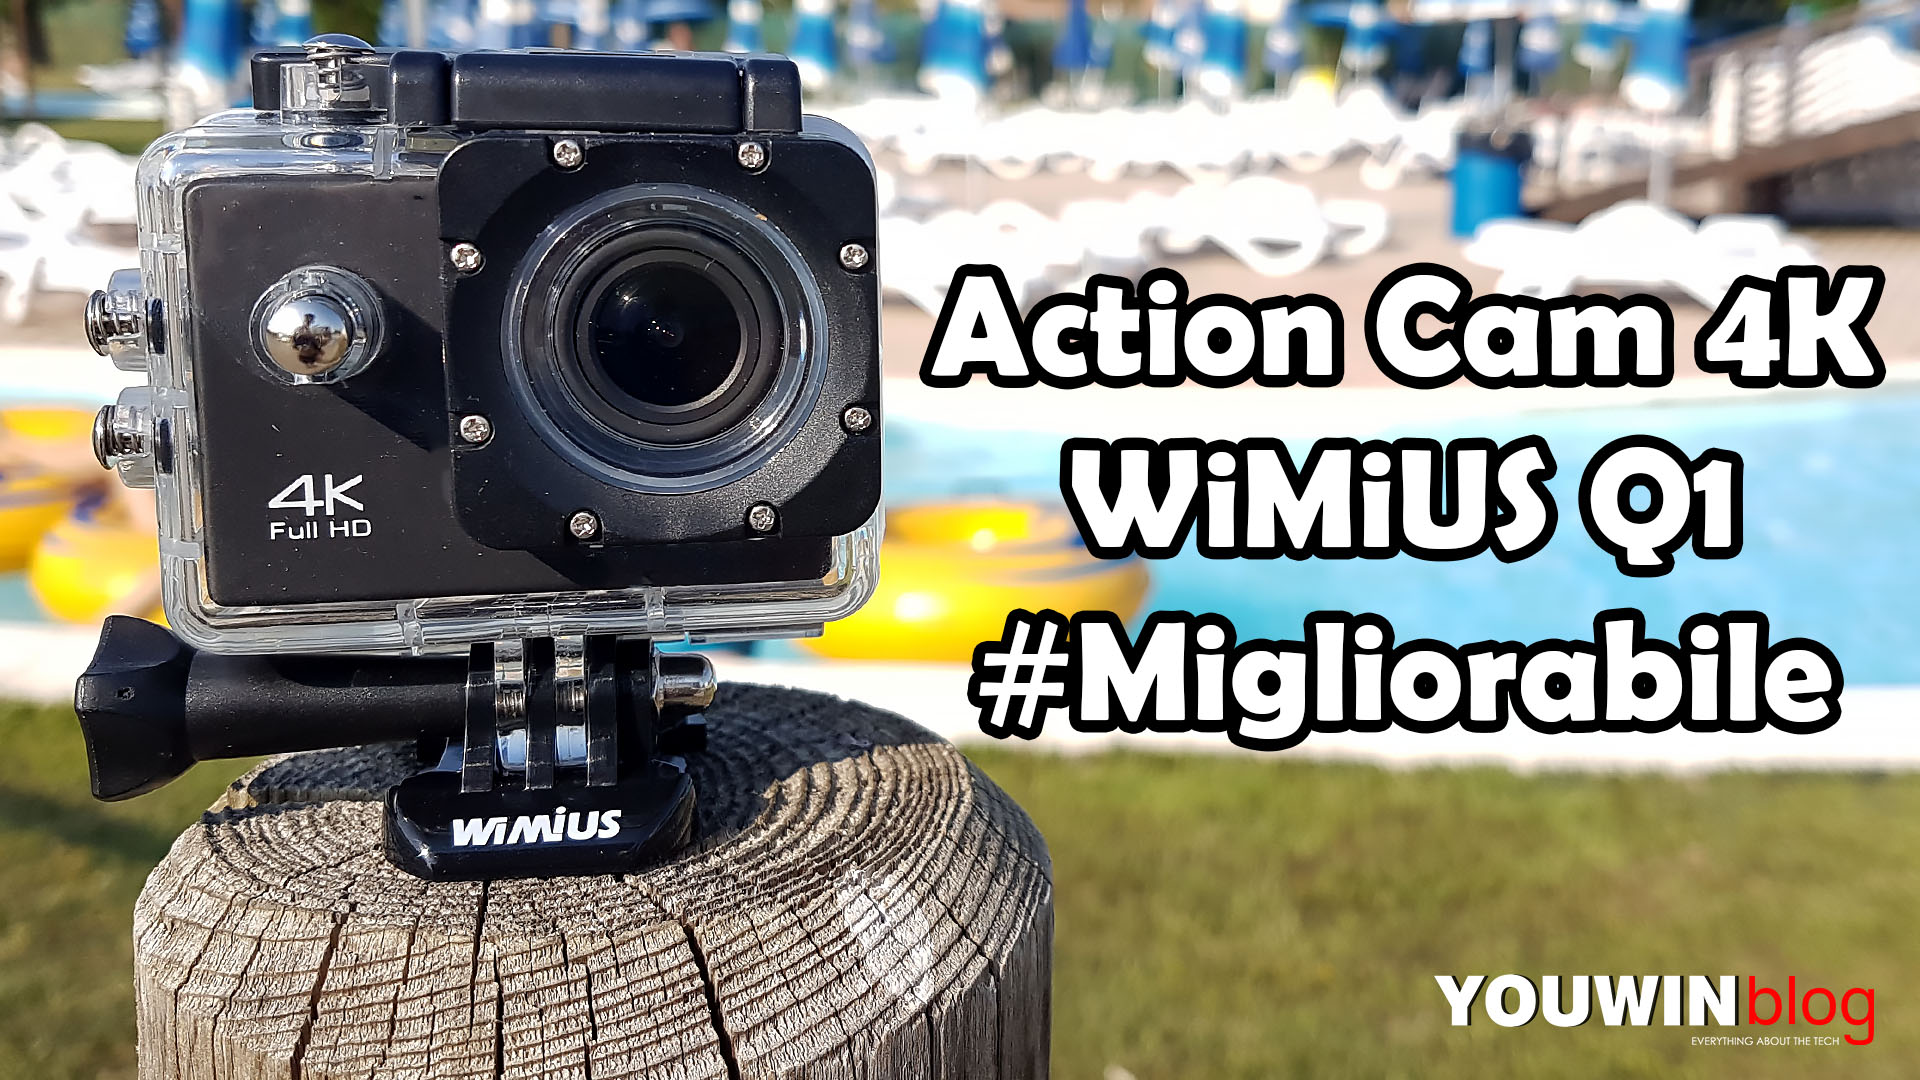 Recensione Action Cam 4k Wimius Q1 Entry Level Youwin Blog